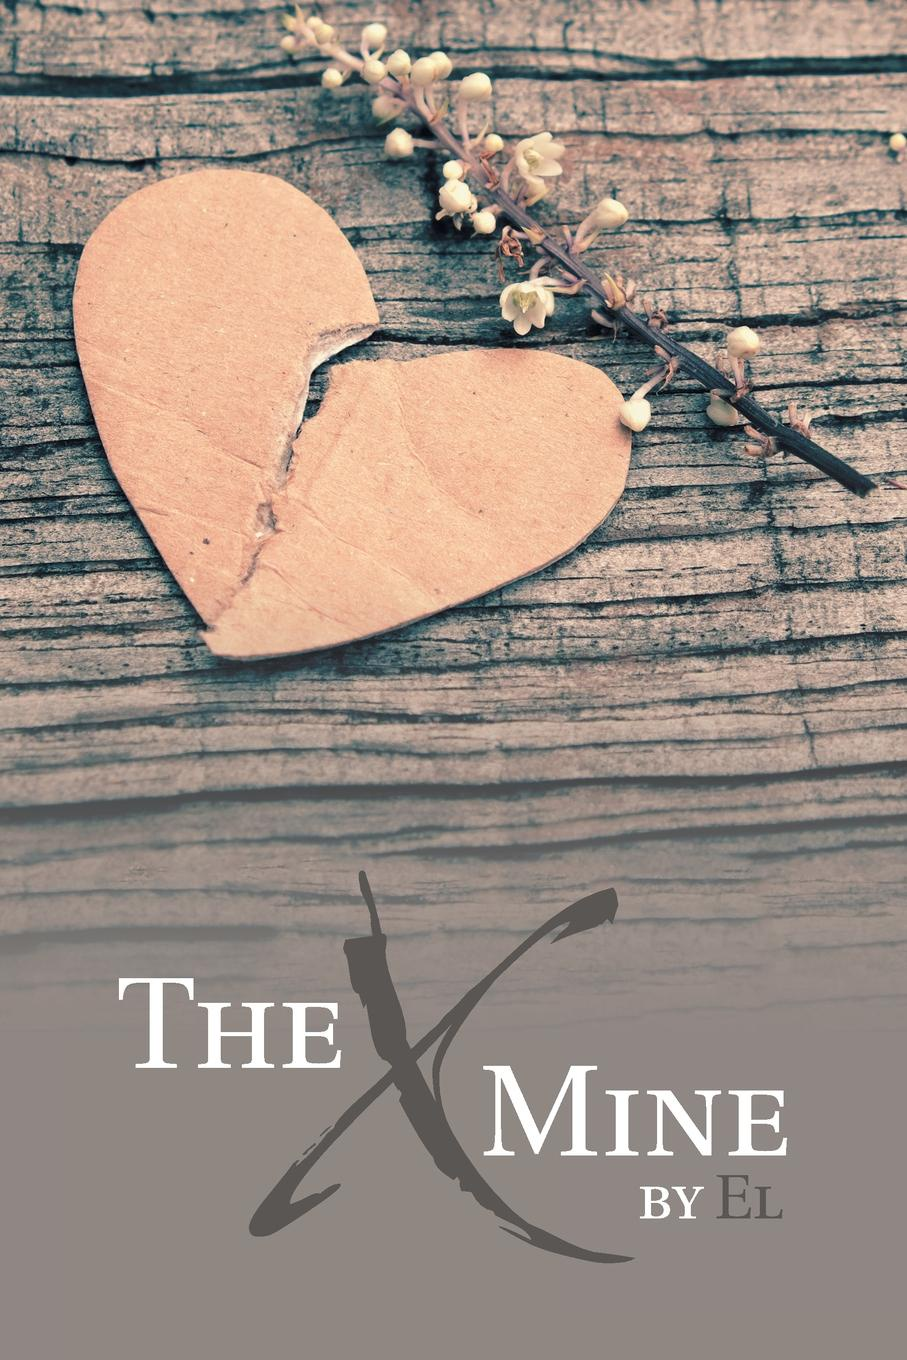 El The X Mine love from lexie the lost and found